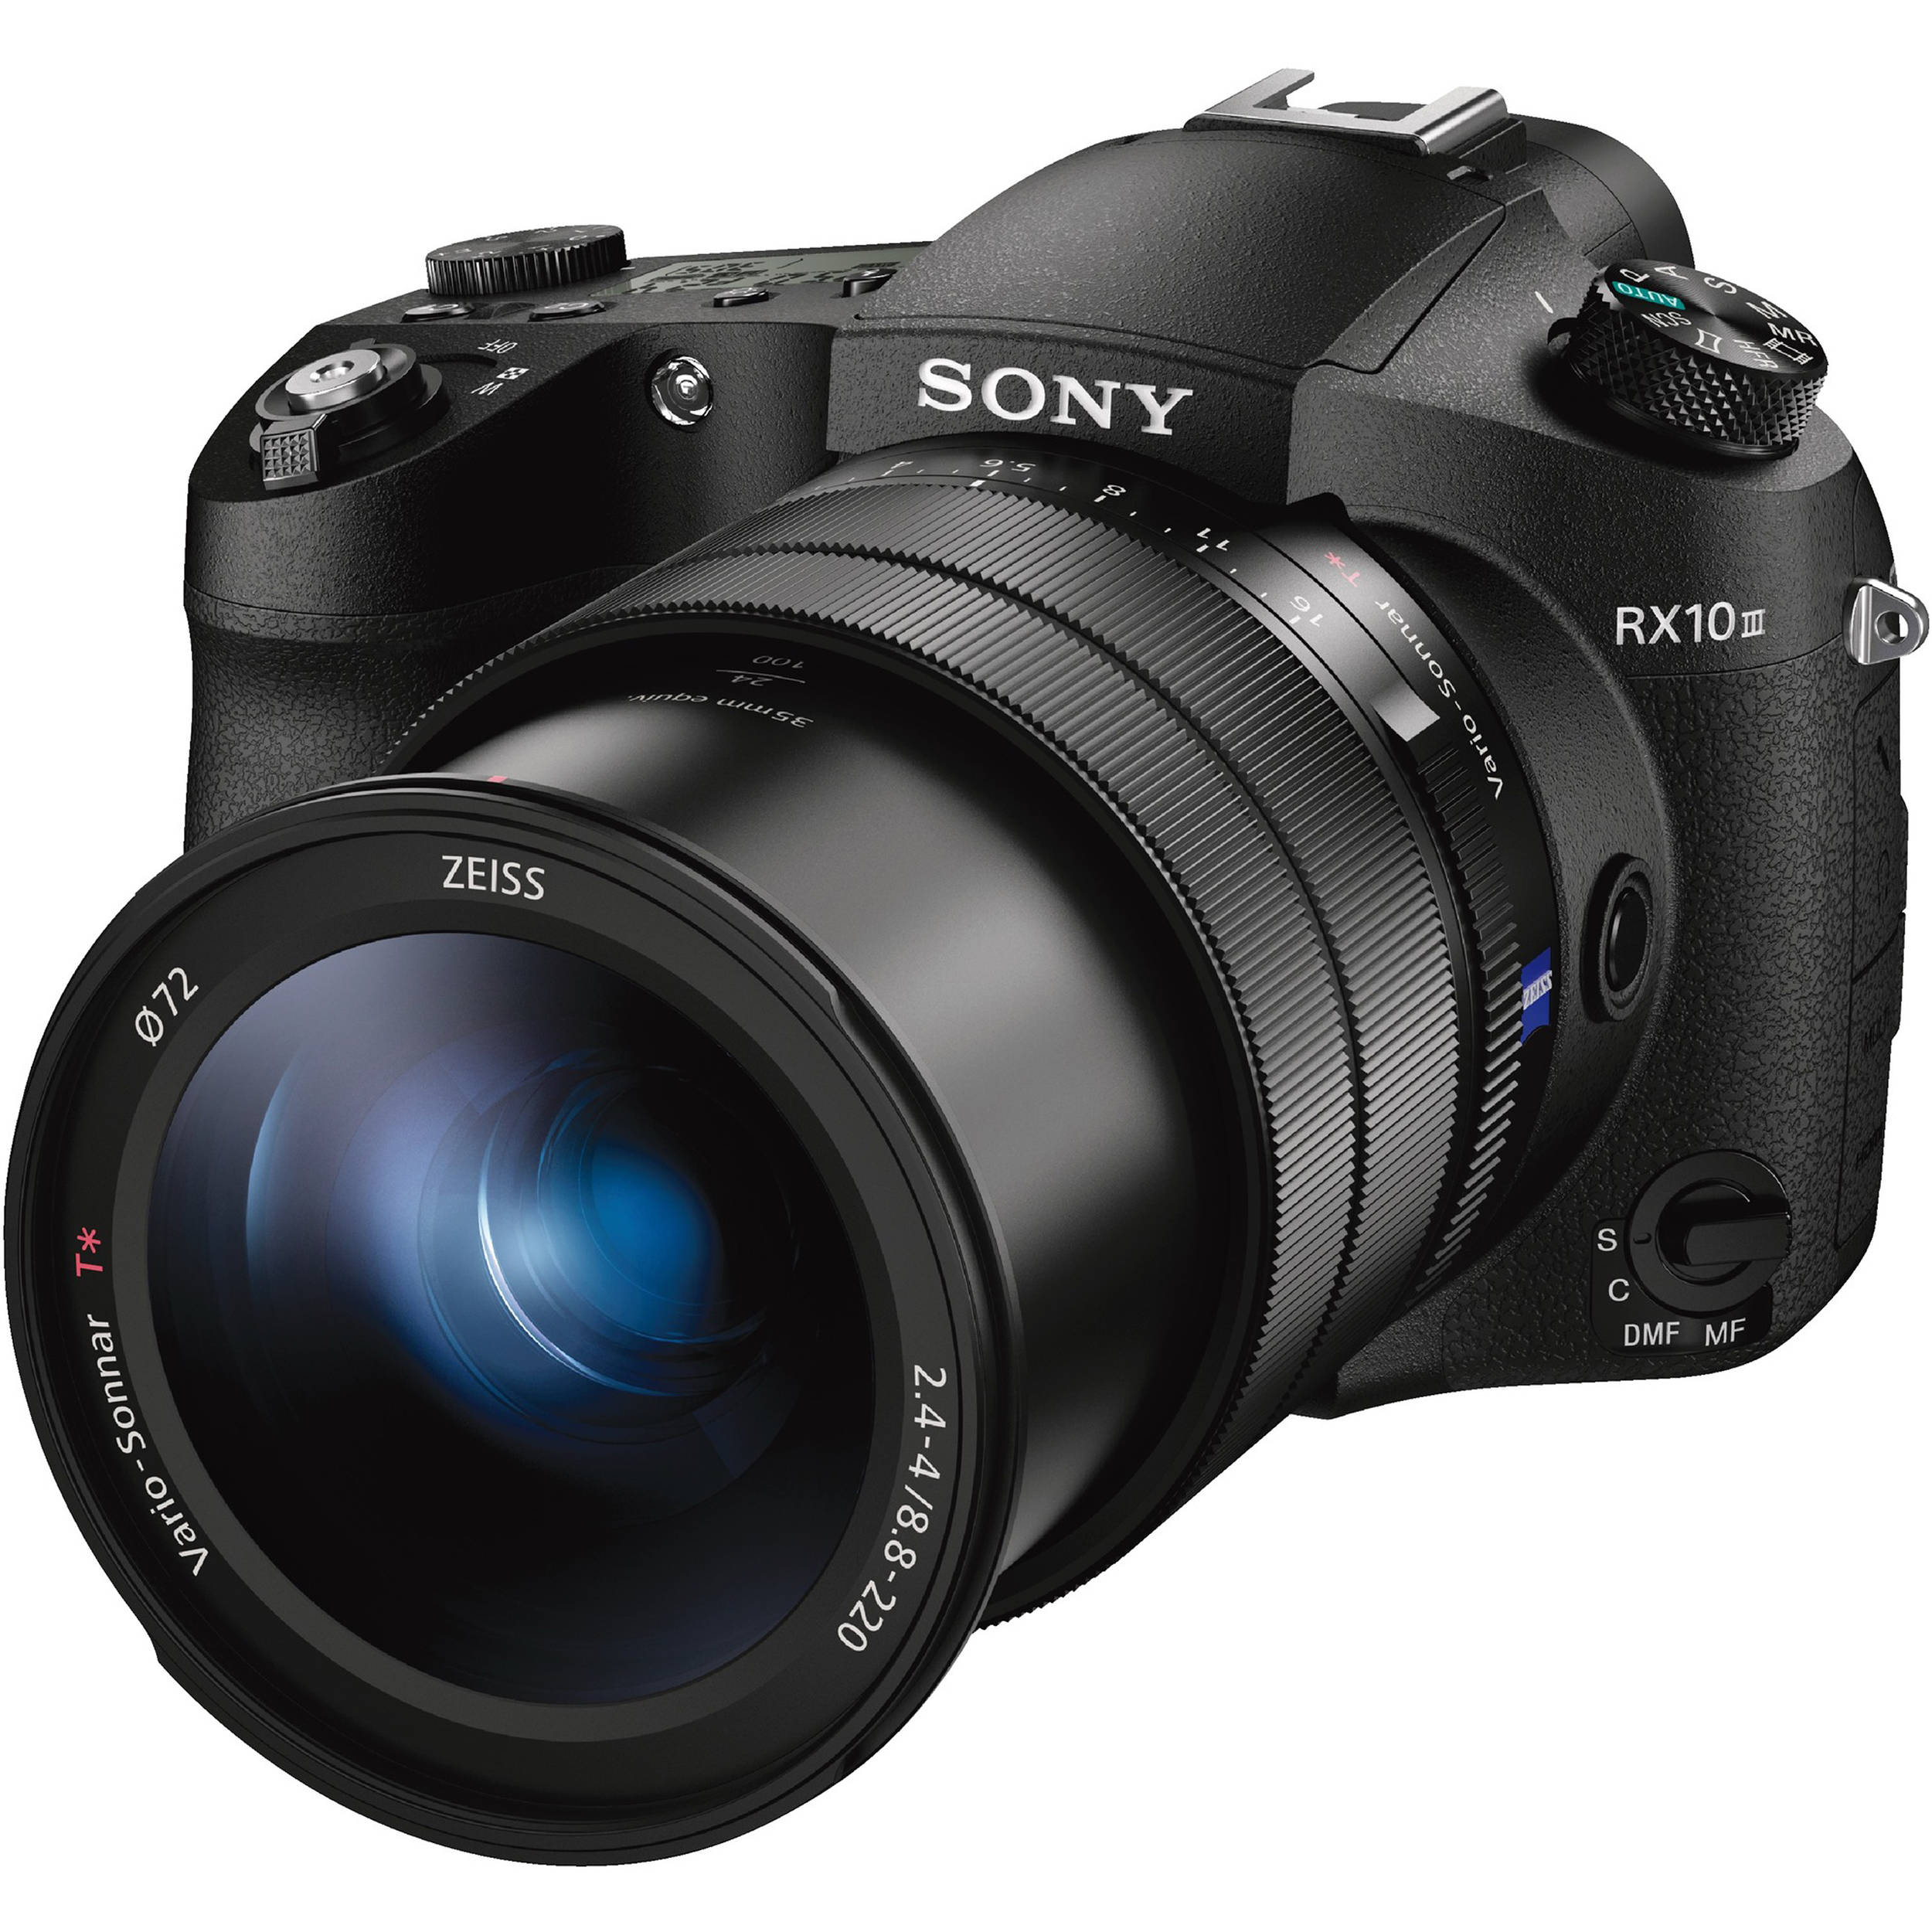 Sony RX10 III Digital Camera DSC-RX10M3 Cyber-shot B&H Photo